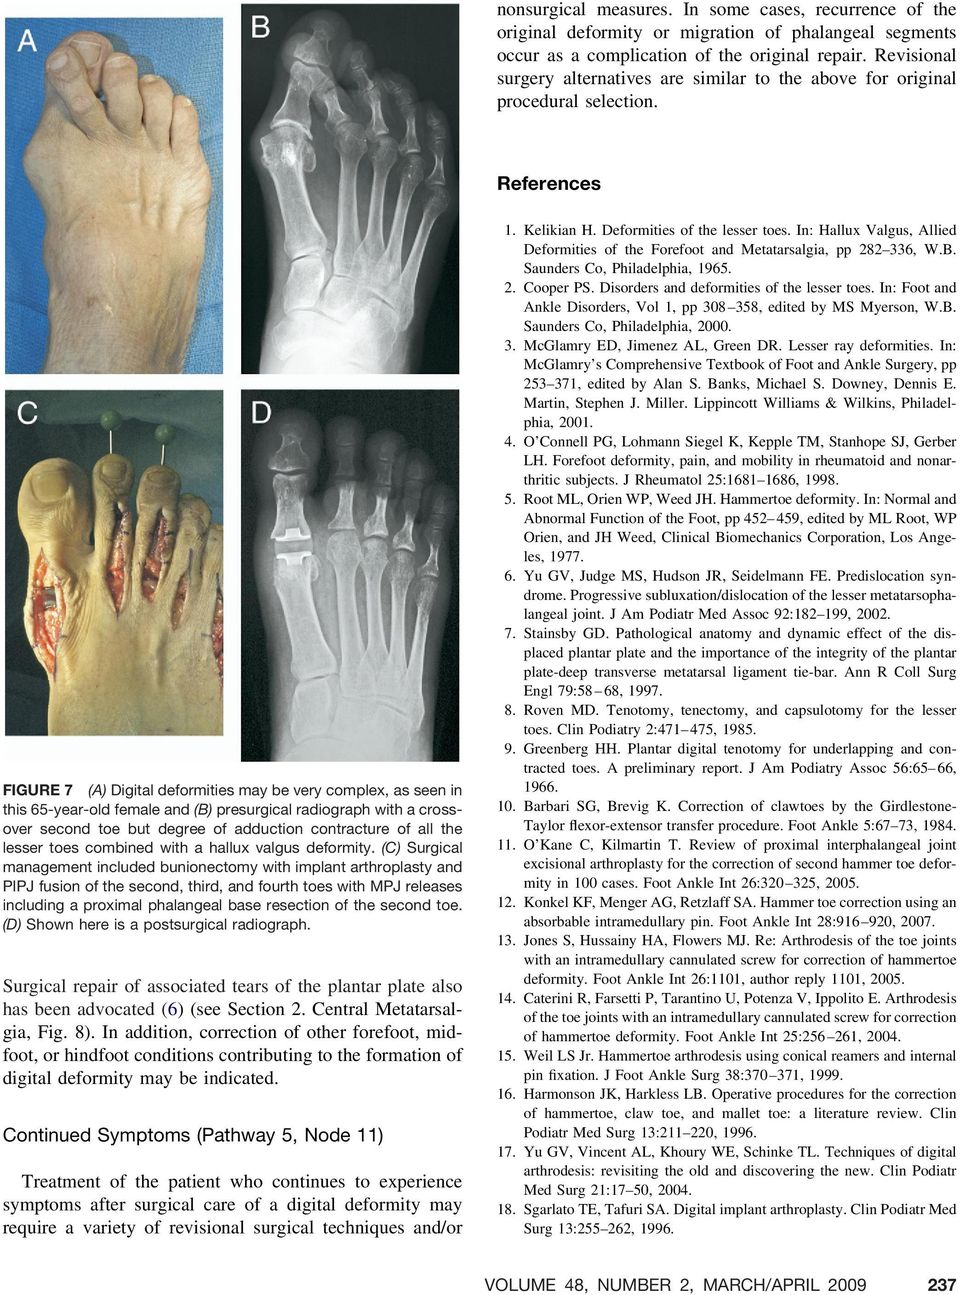 References FIGURE 7 (A) Digital deformities may be very complex, as seen in this 65-year-old female and (B) presurgical radiograph with a crossover second toe but degree of adduction contracture of